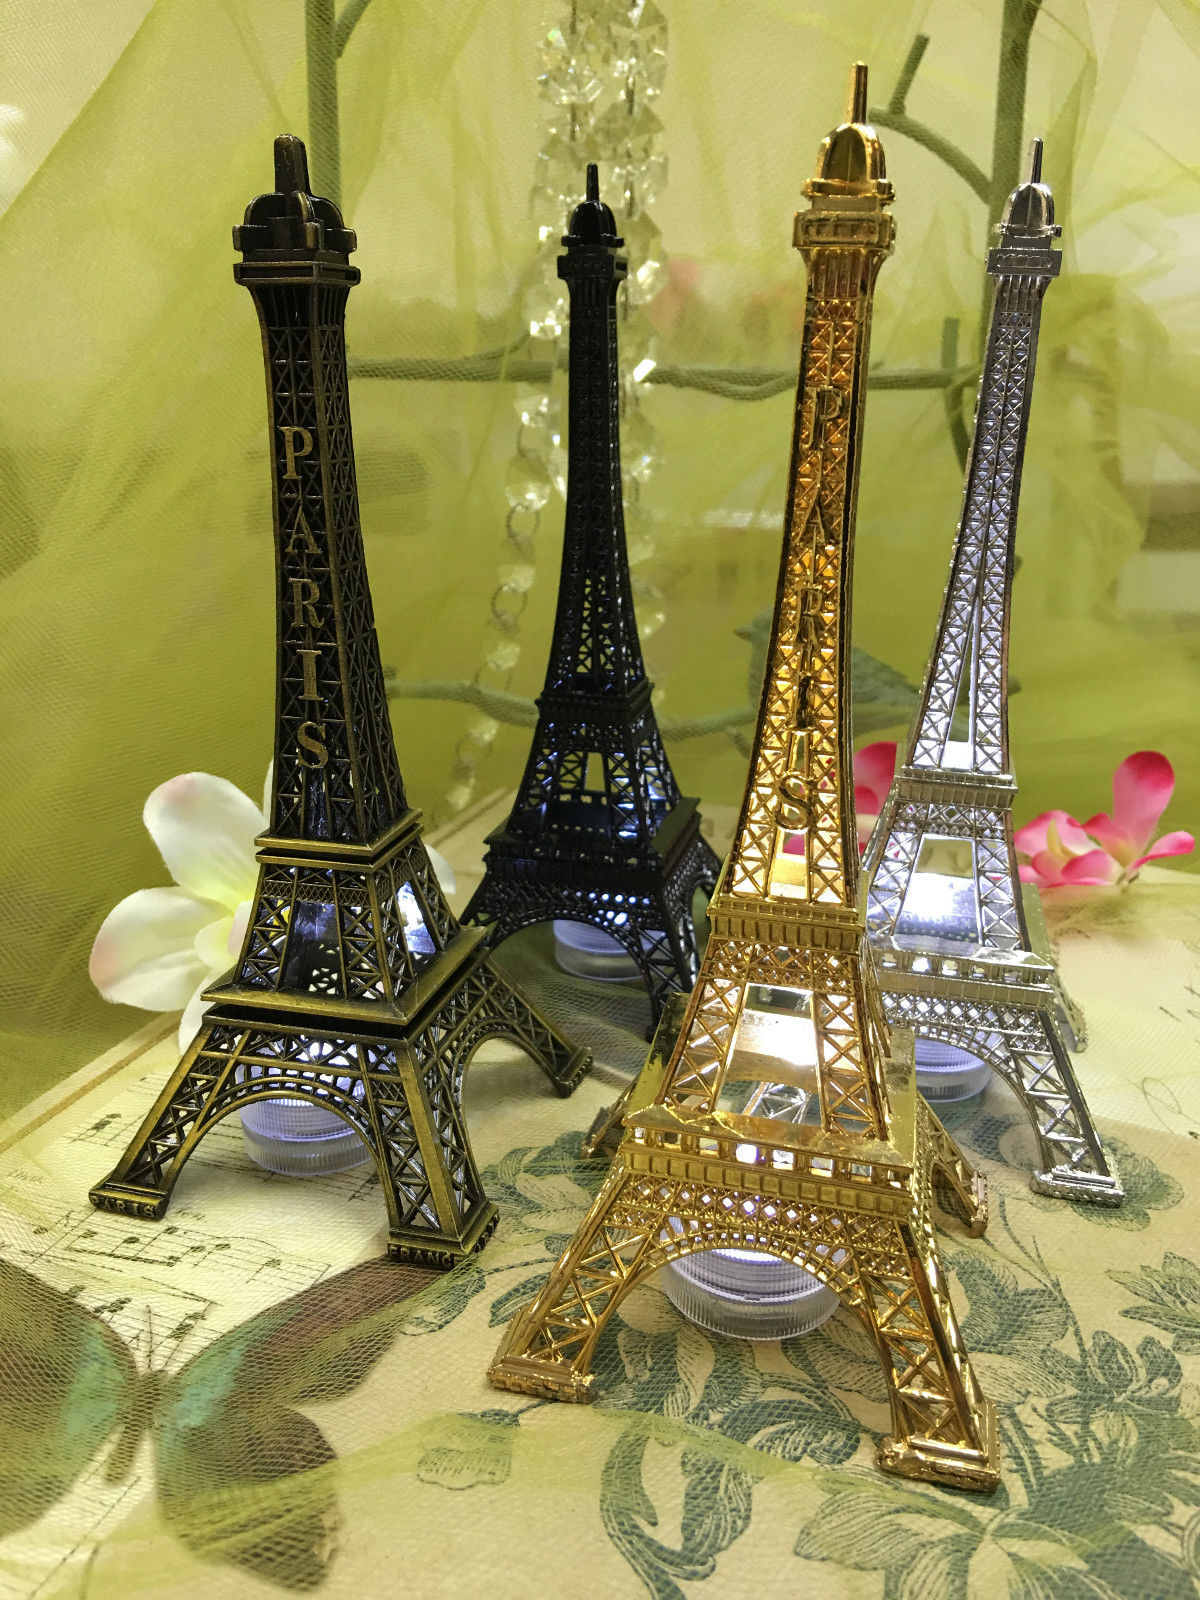 12 Eiffel Tower Paris Metal Stand Model Table Decor W Extra Led Waterproof Light